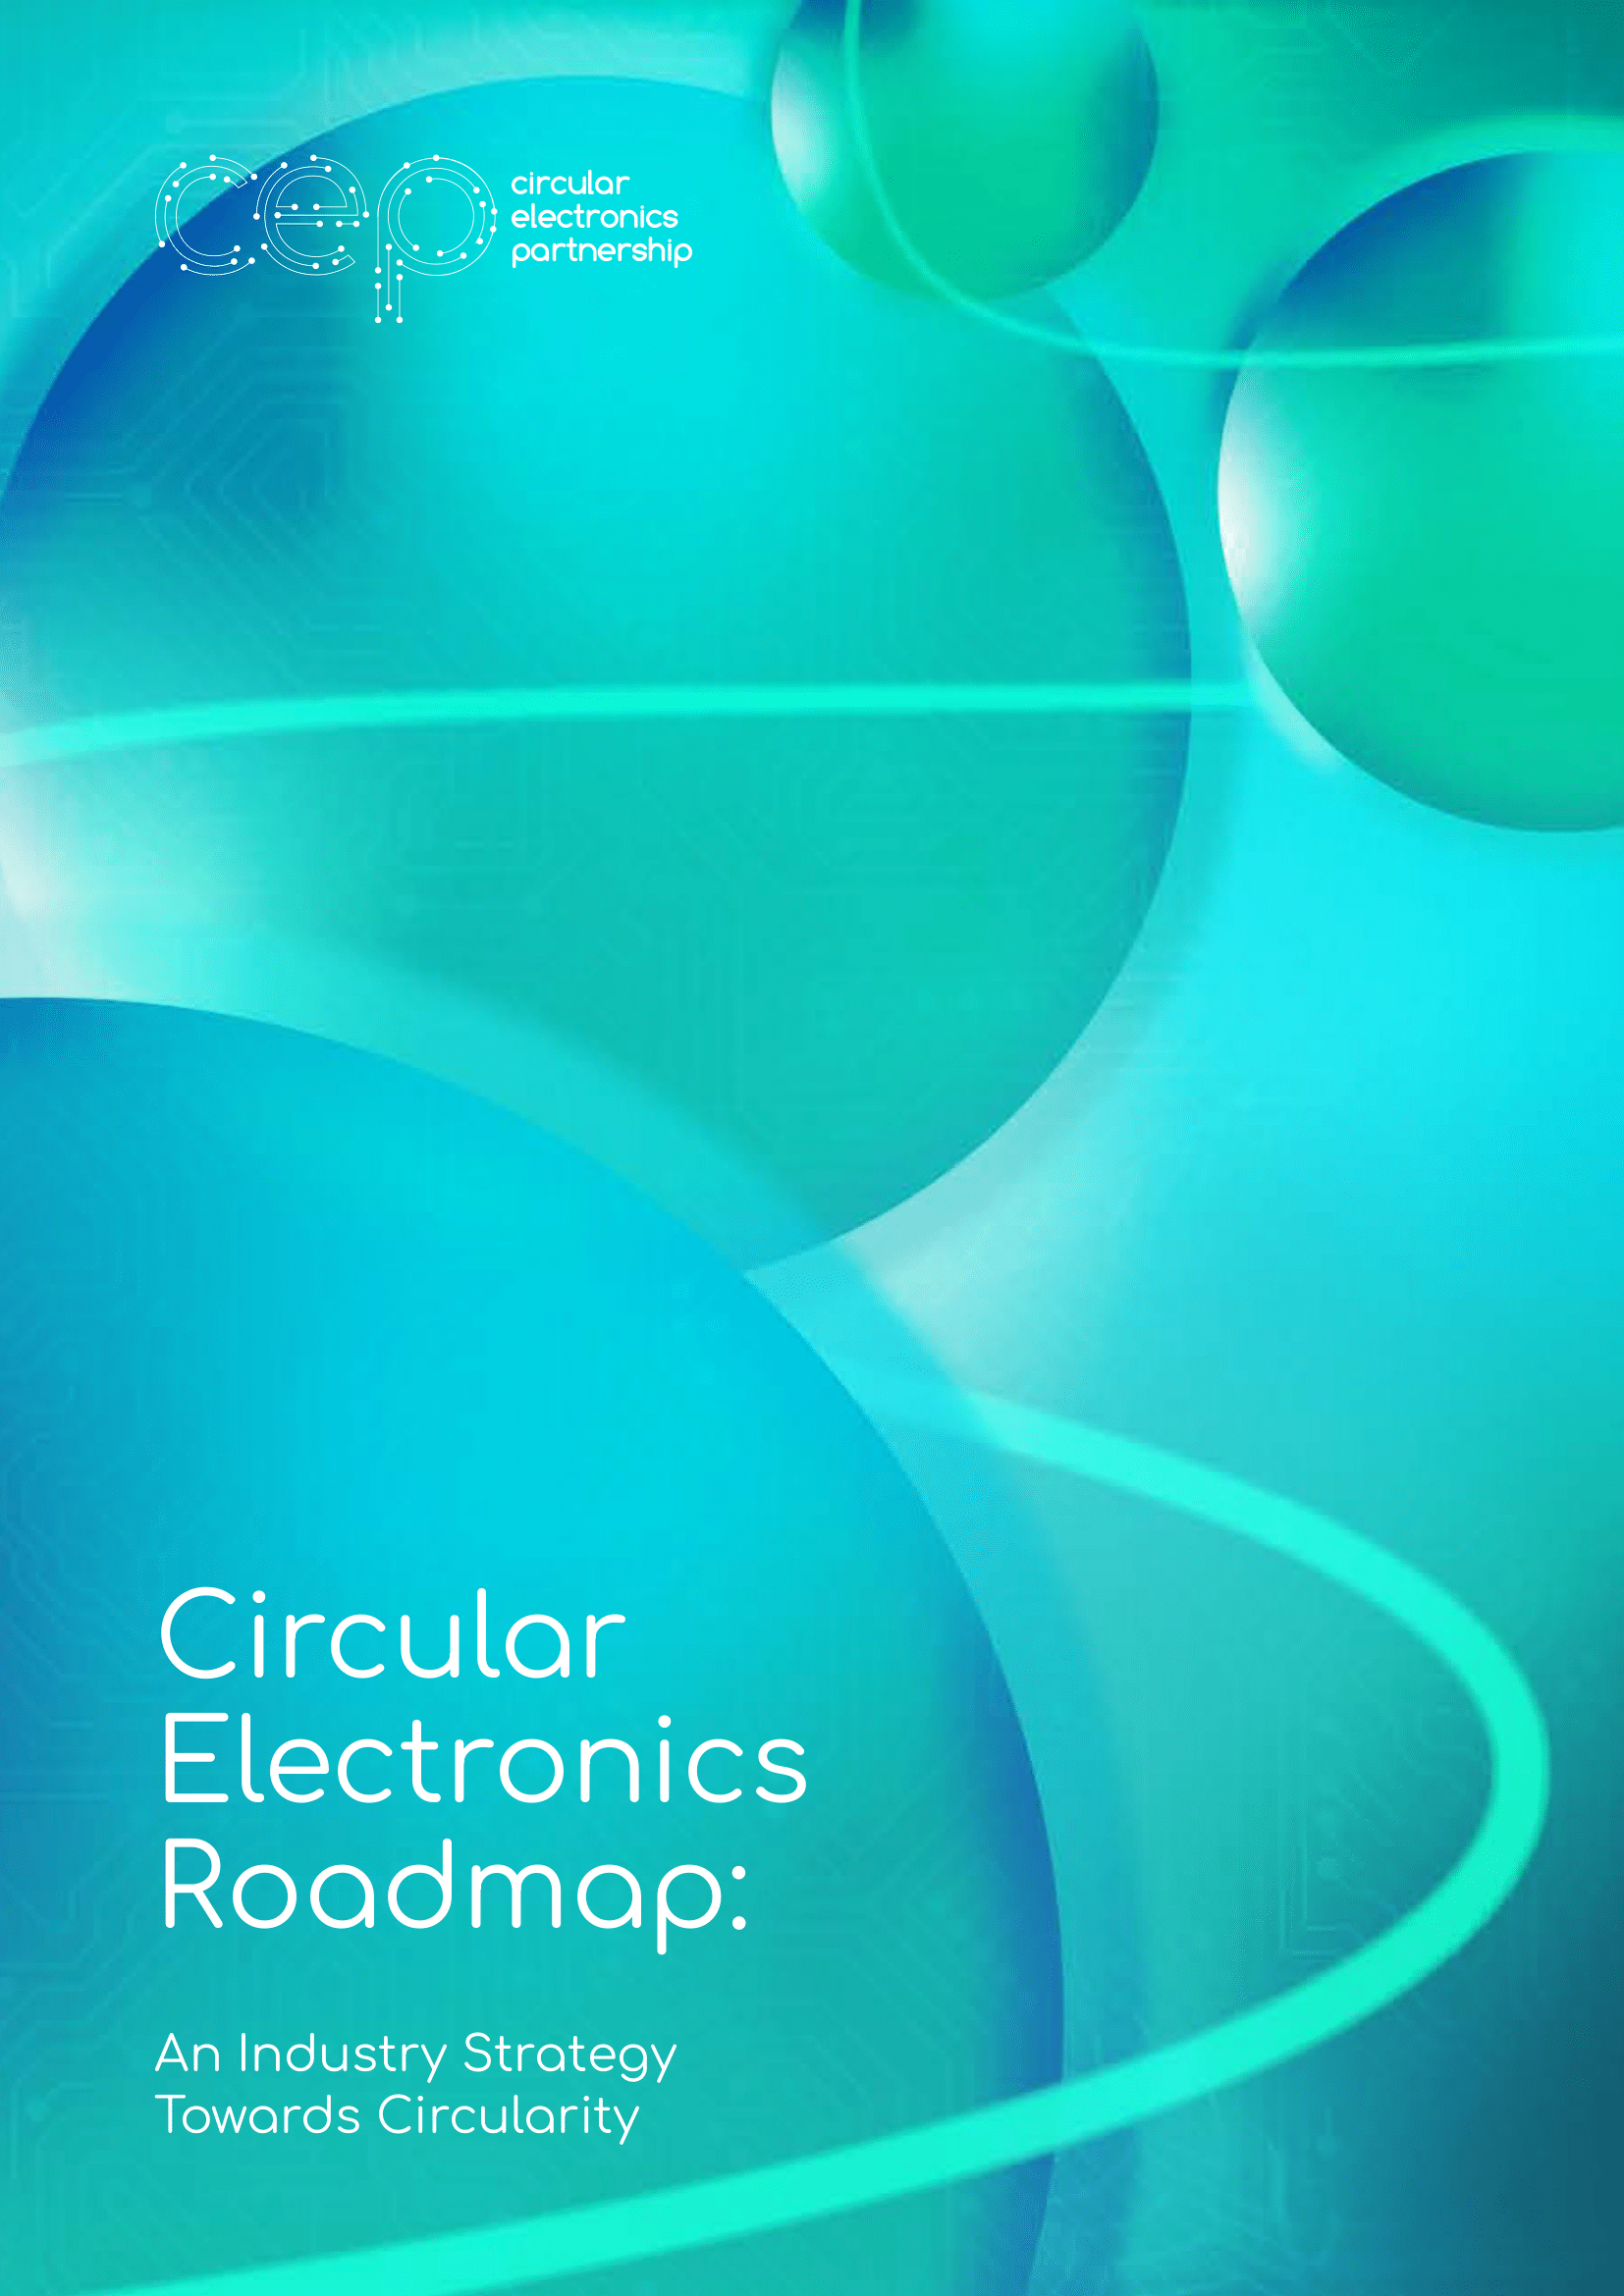 Circular Electronics Roadmap: An Industry Strategy Towards Circularity, March 2021